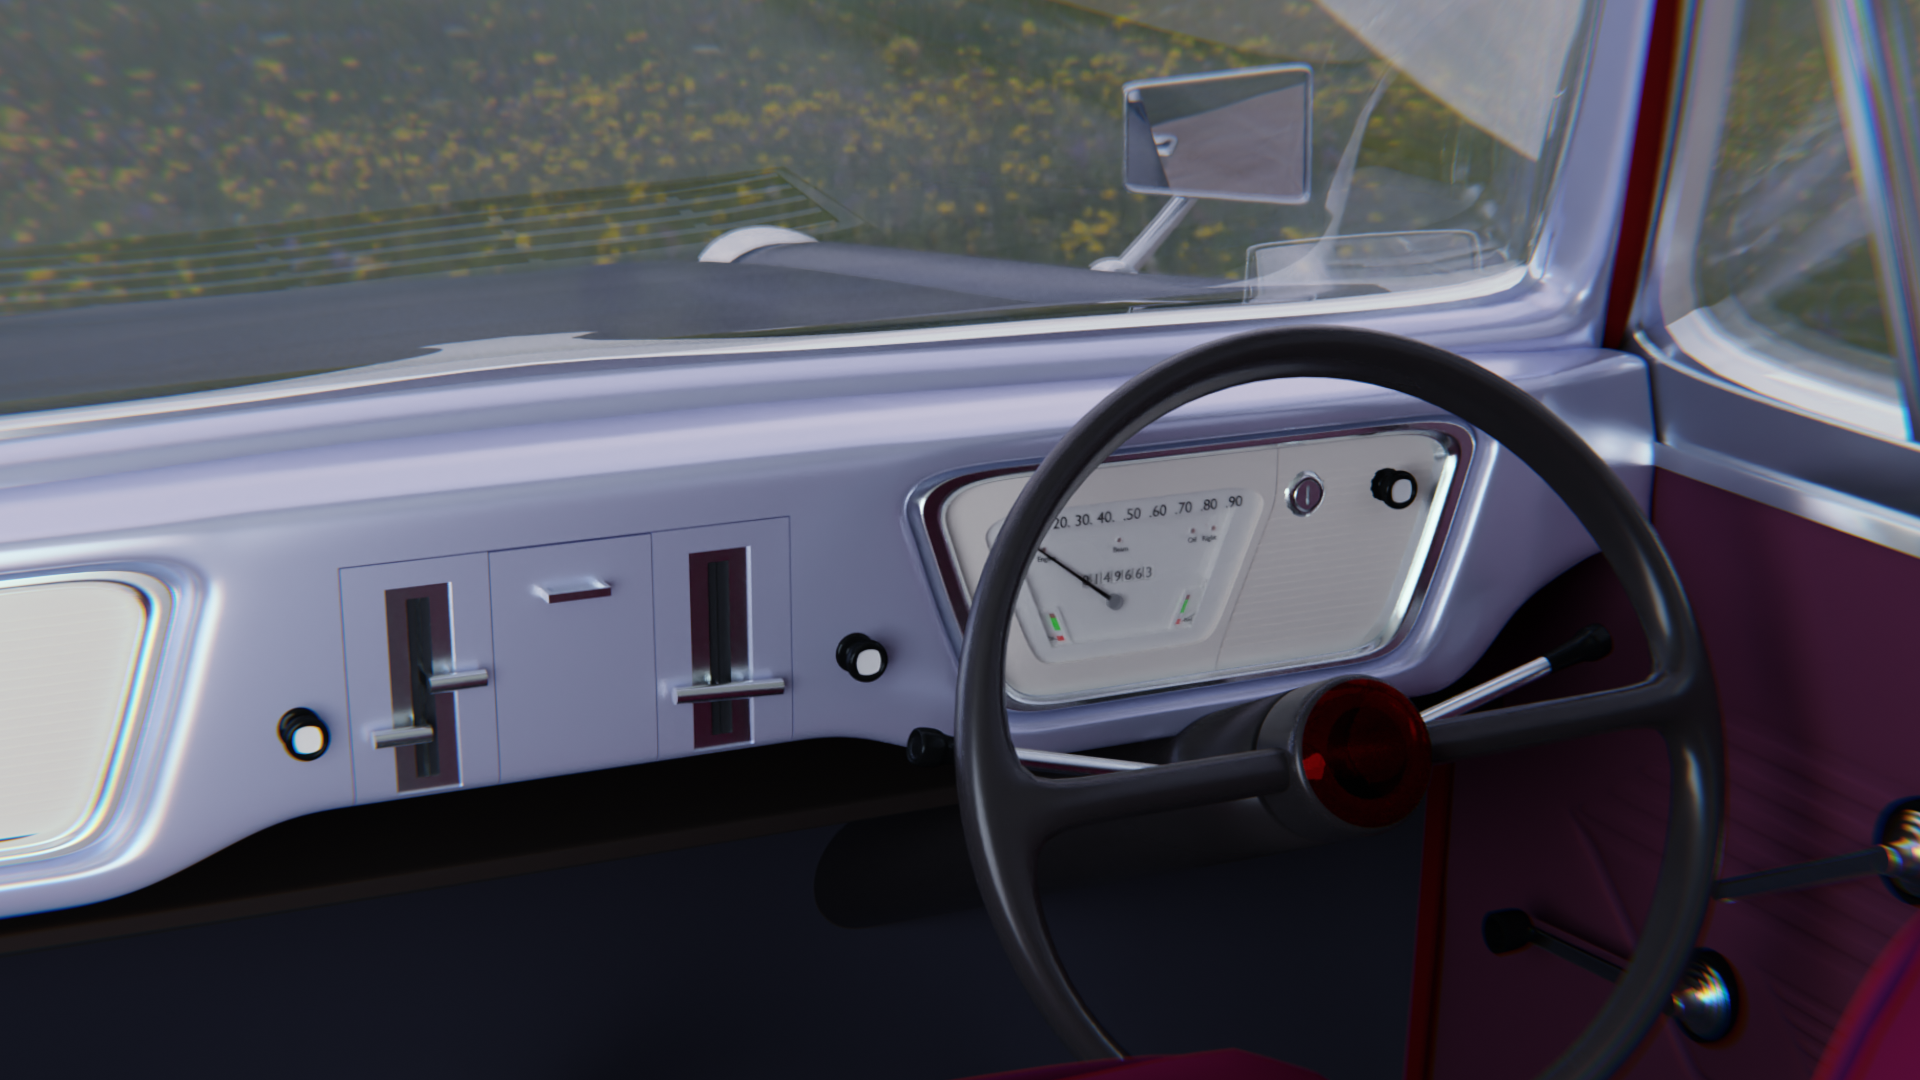 60's Car preview image 2